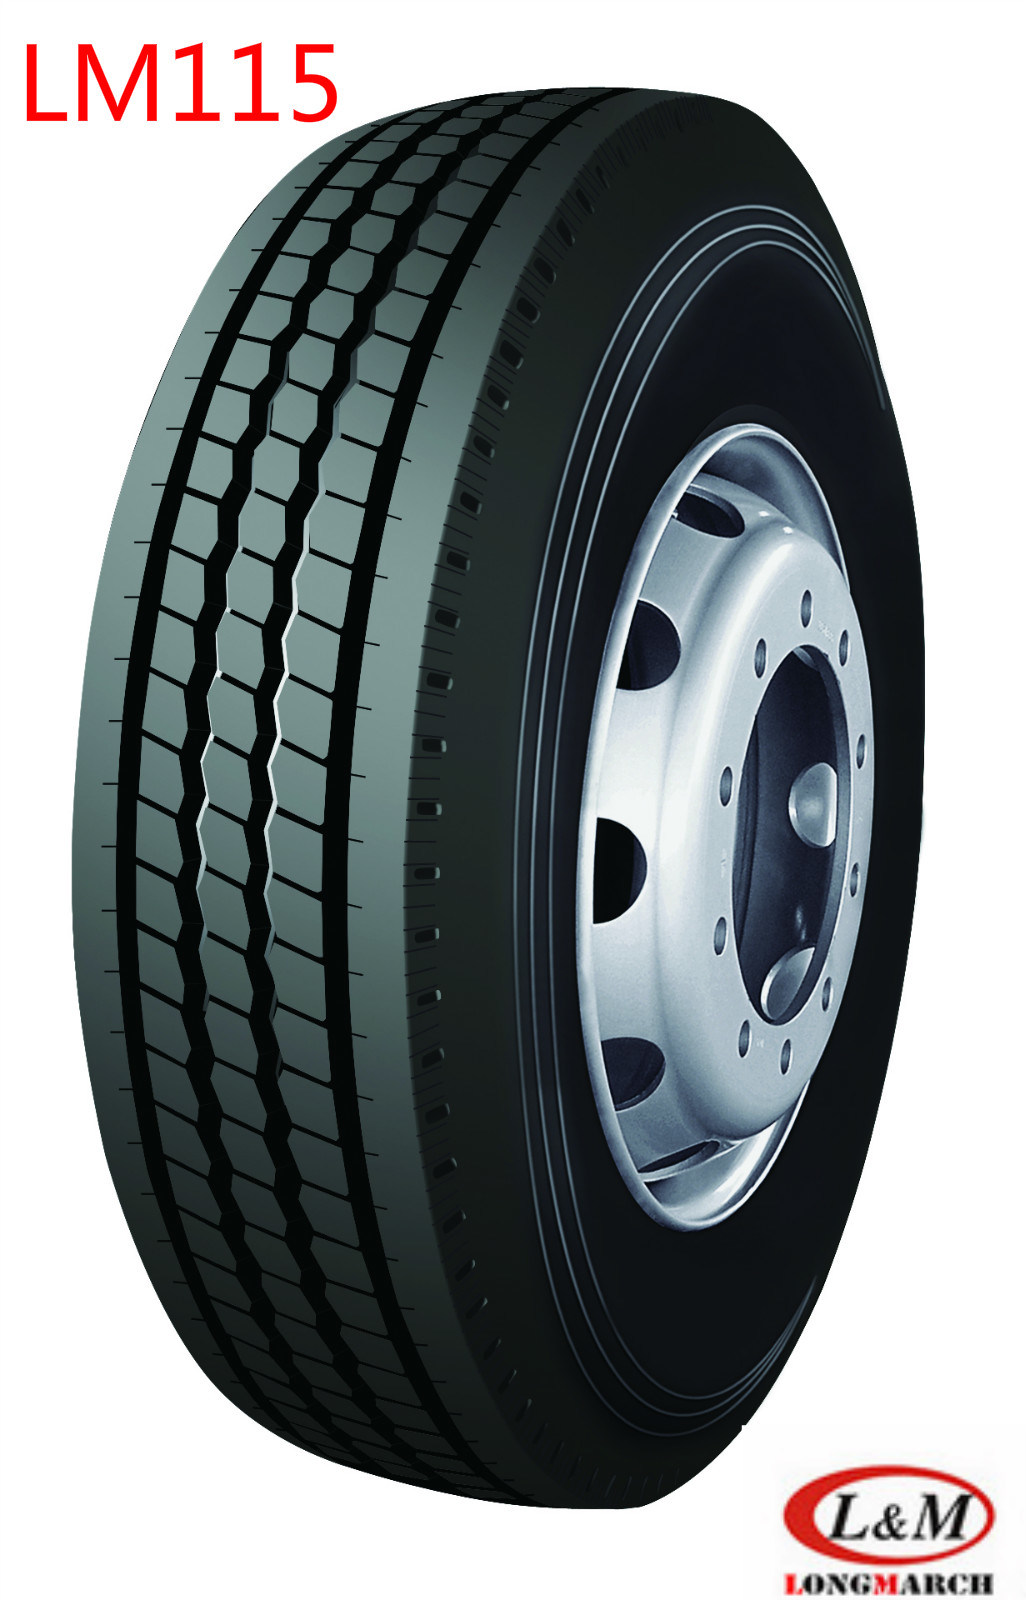 LONGMARCH Drive/Steer/Trailer Tyre for All Positions (115)